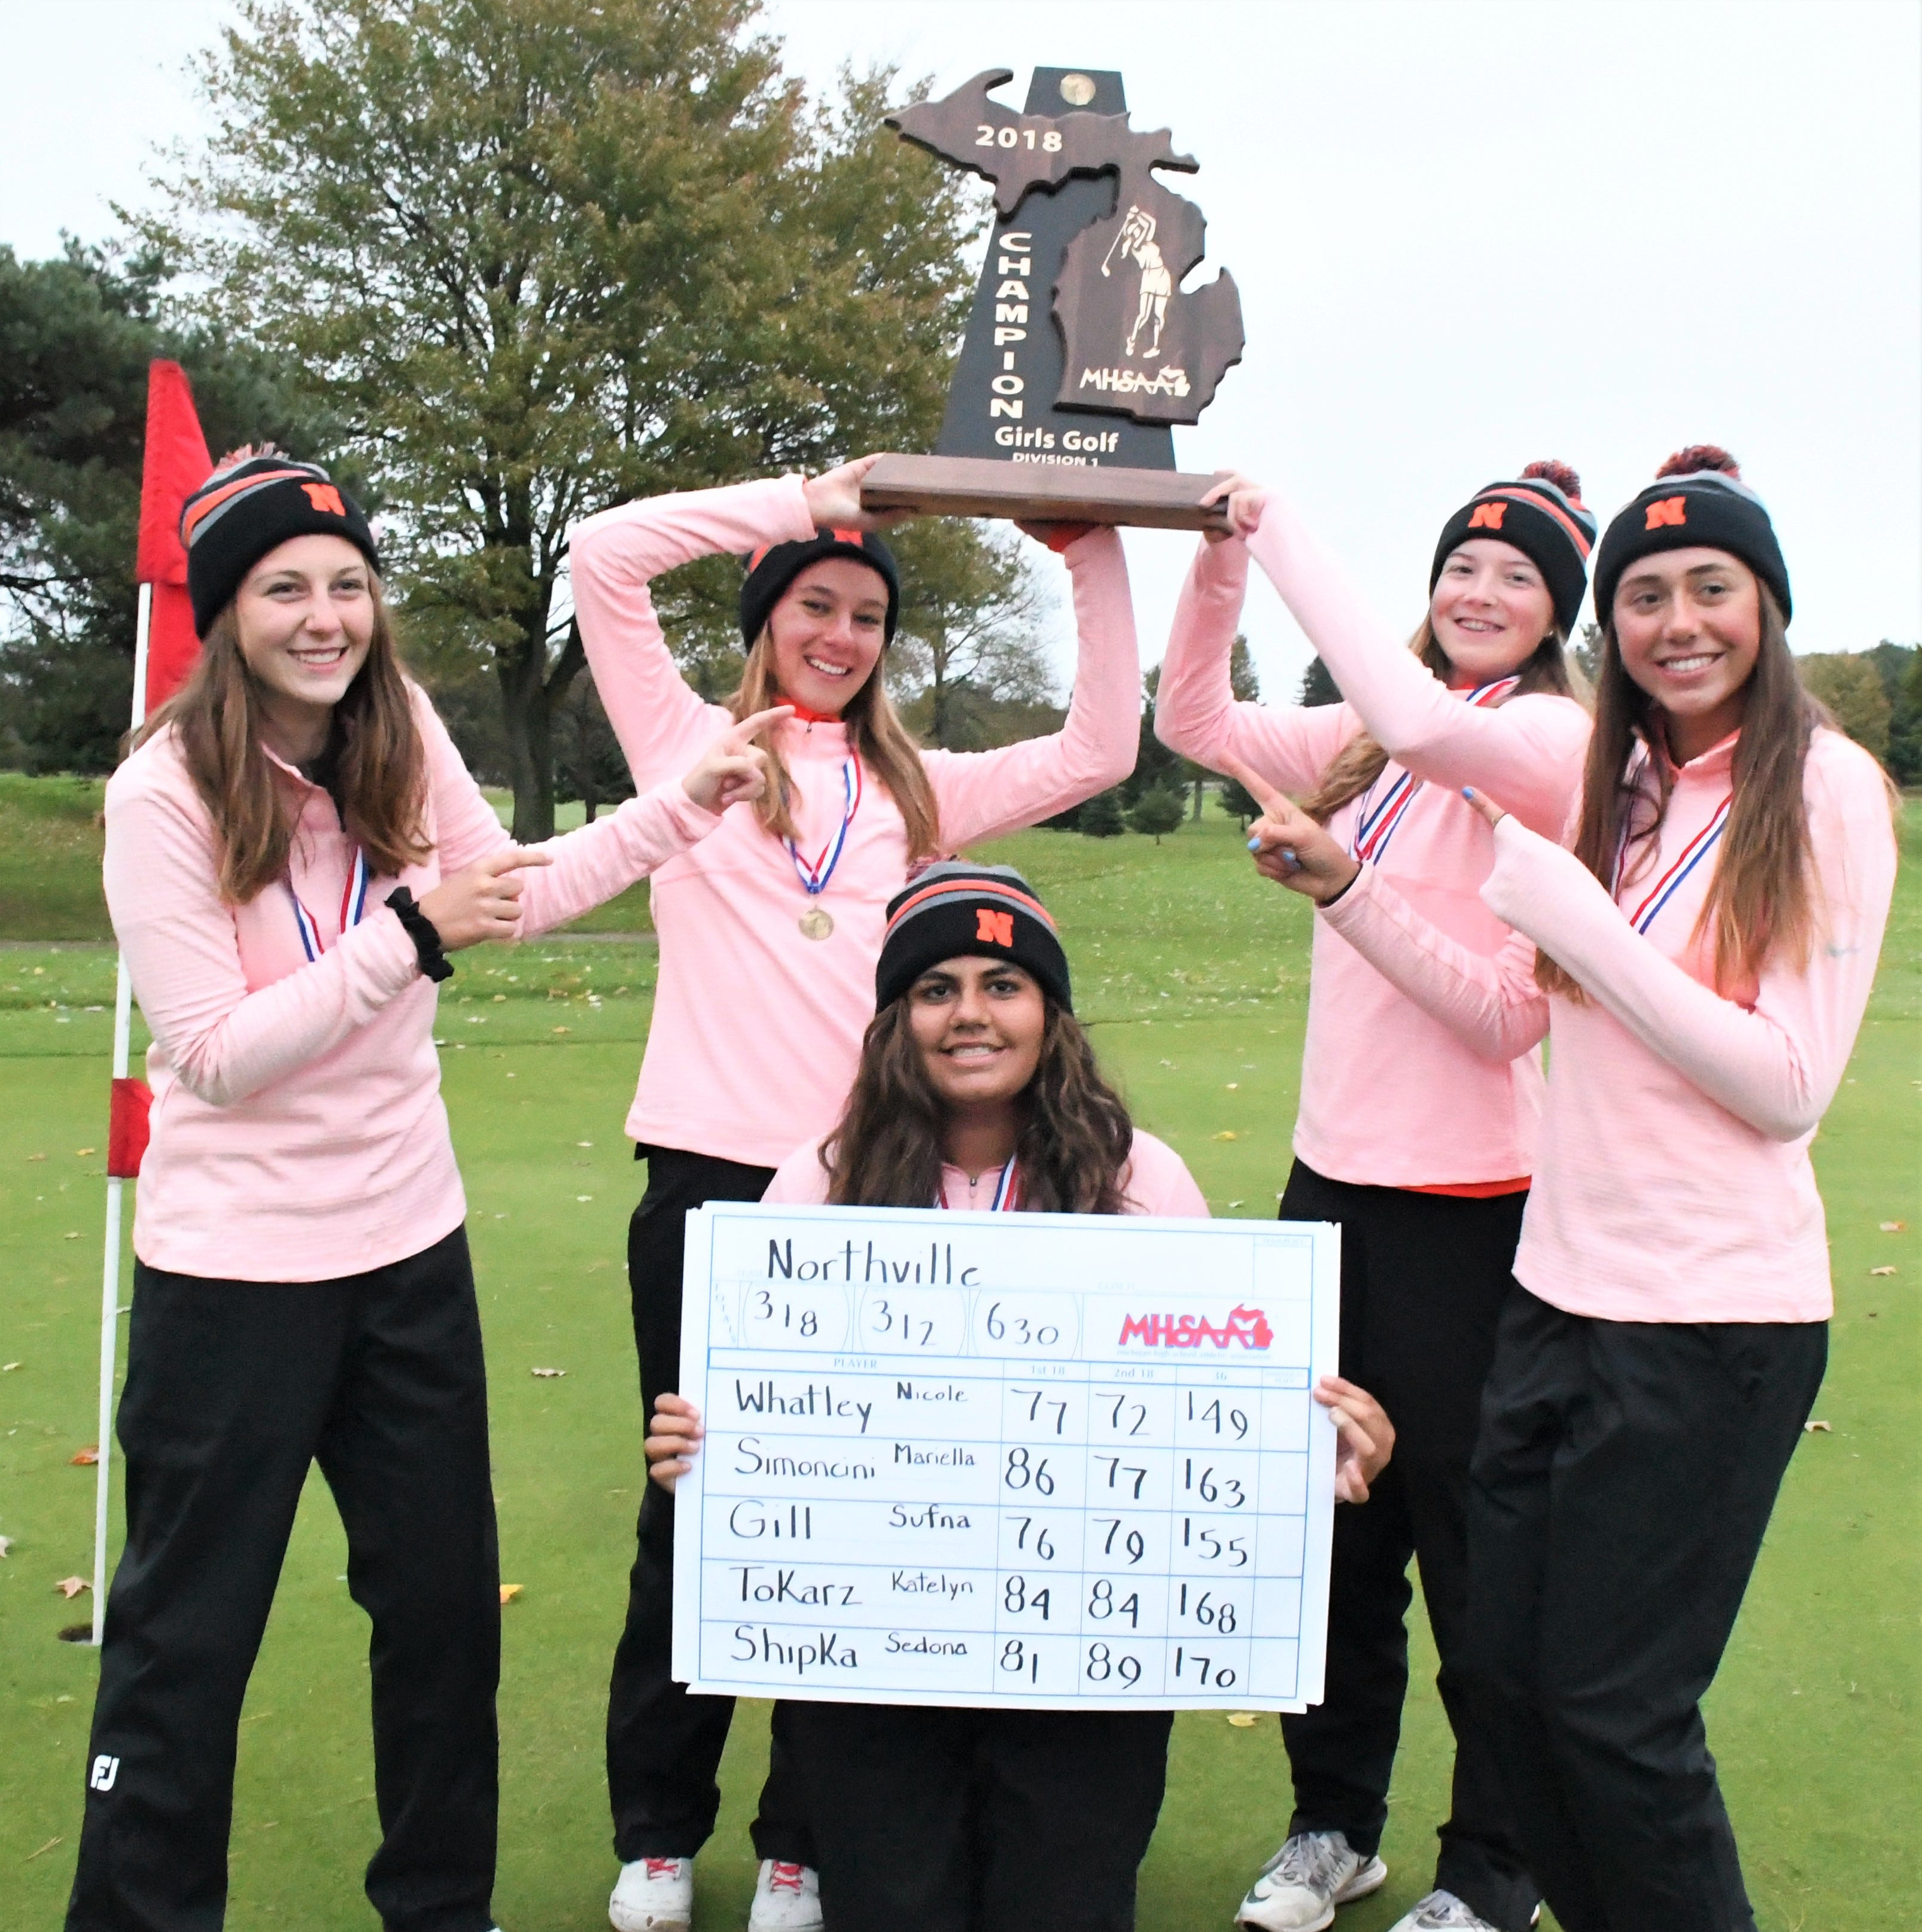 The Northville girls golf team celebrates its first-ever Division 1 state championship on Oct. 20 in Battle Creek.